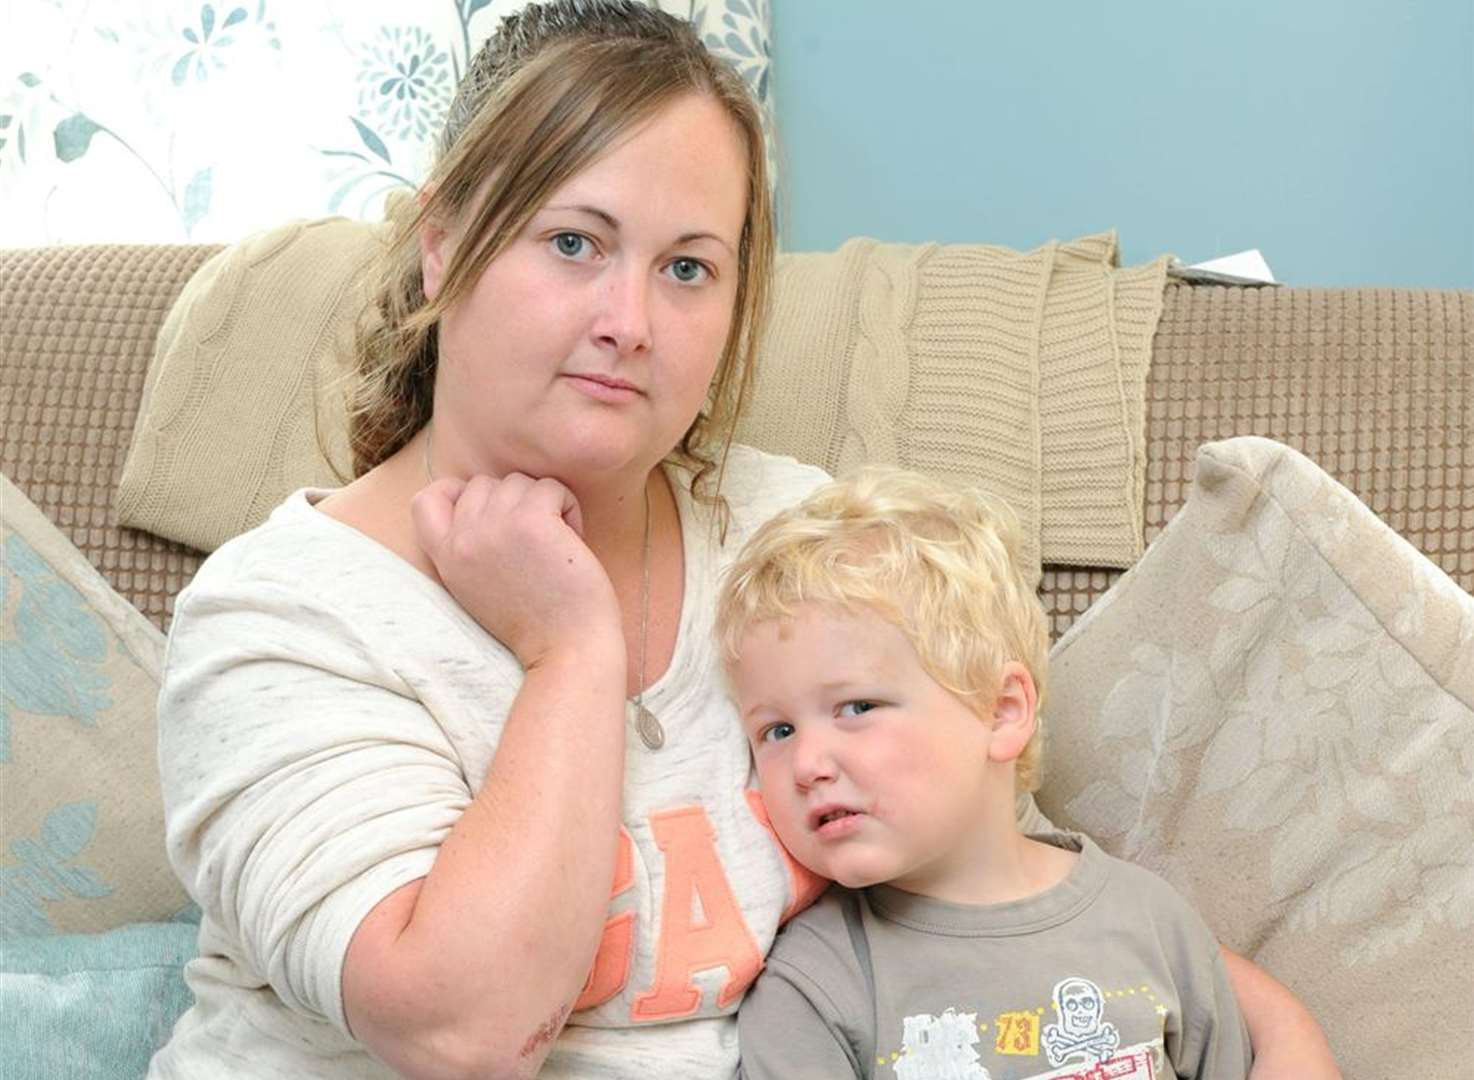 Motorists ignore injured mum